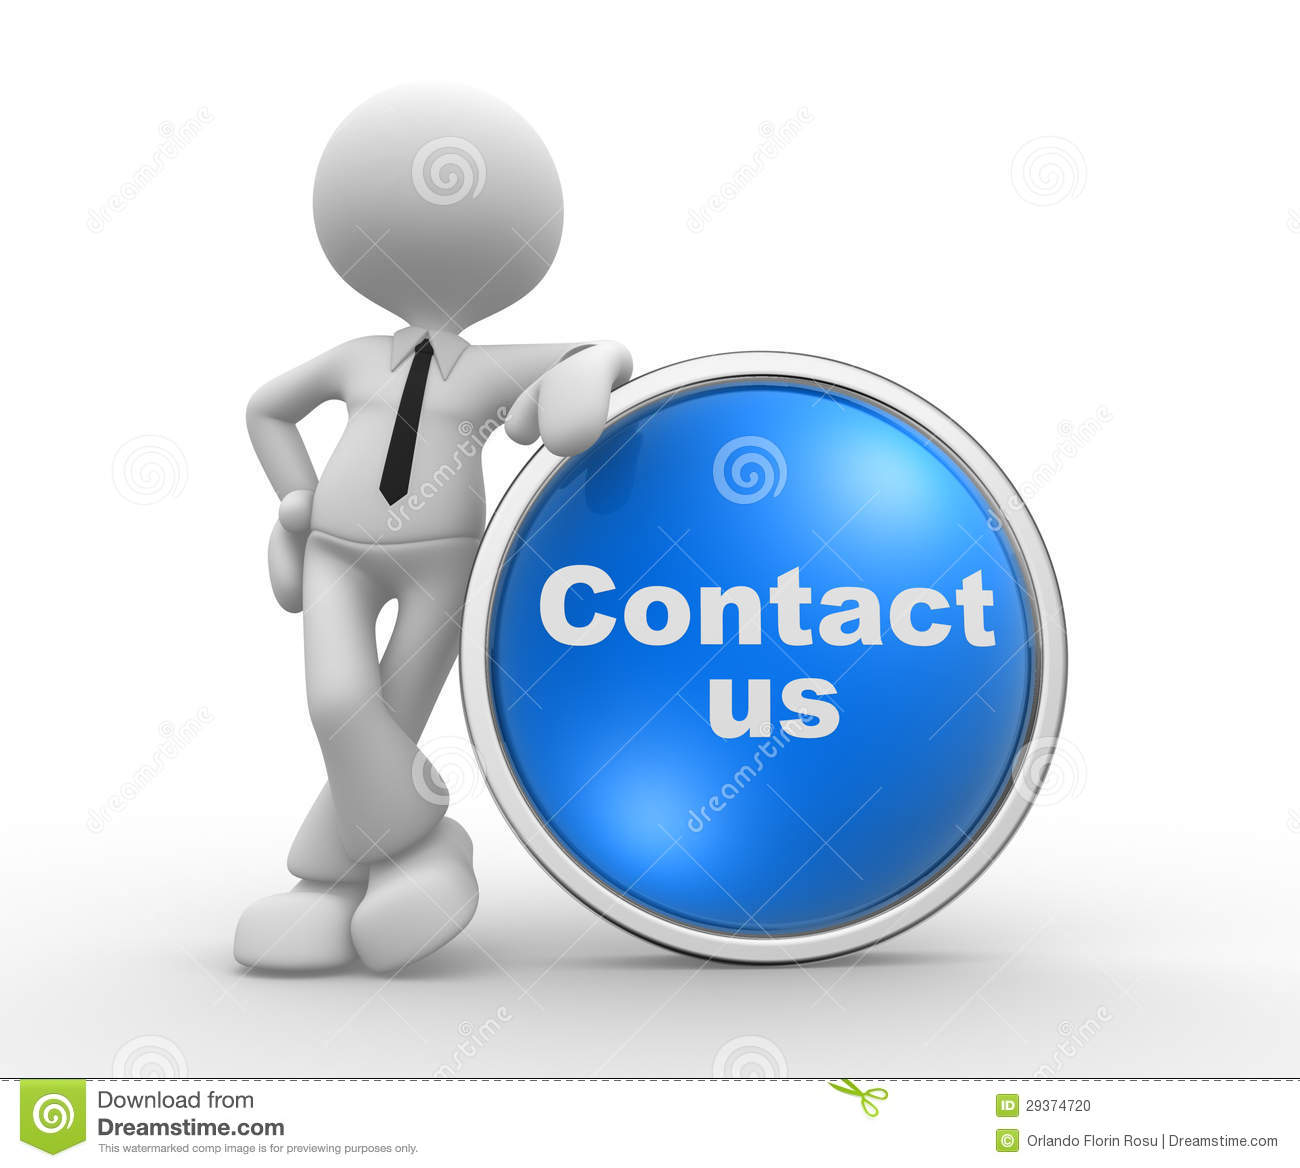 Contact Us Stock Illustration. Illustration Of Business